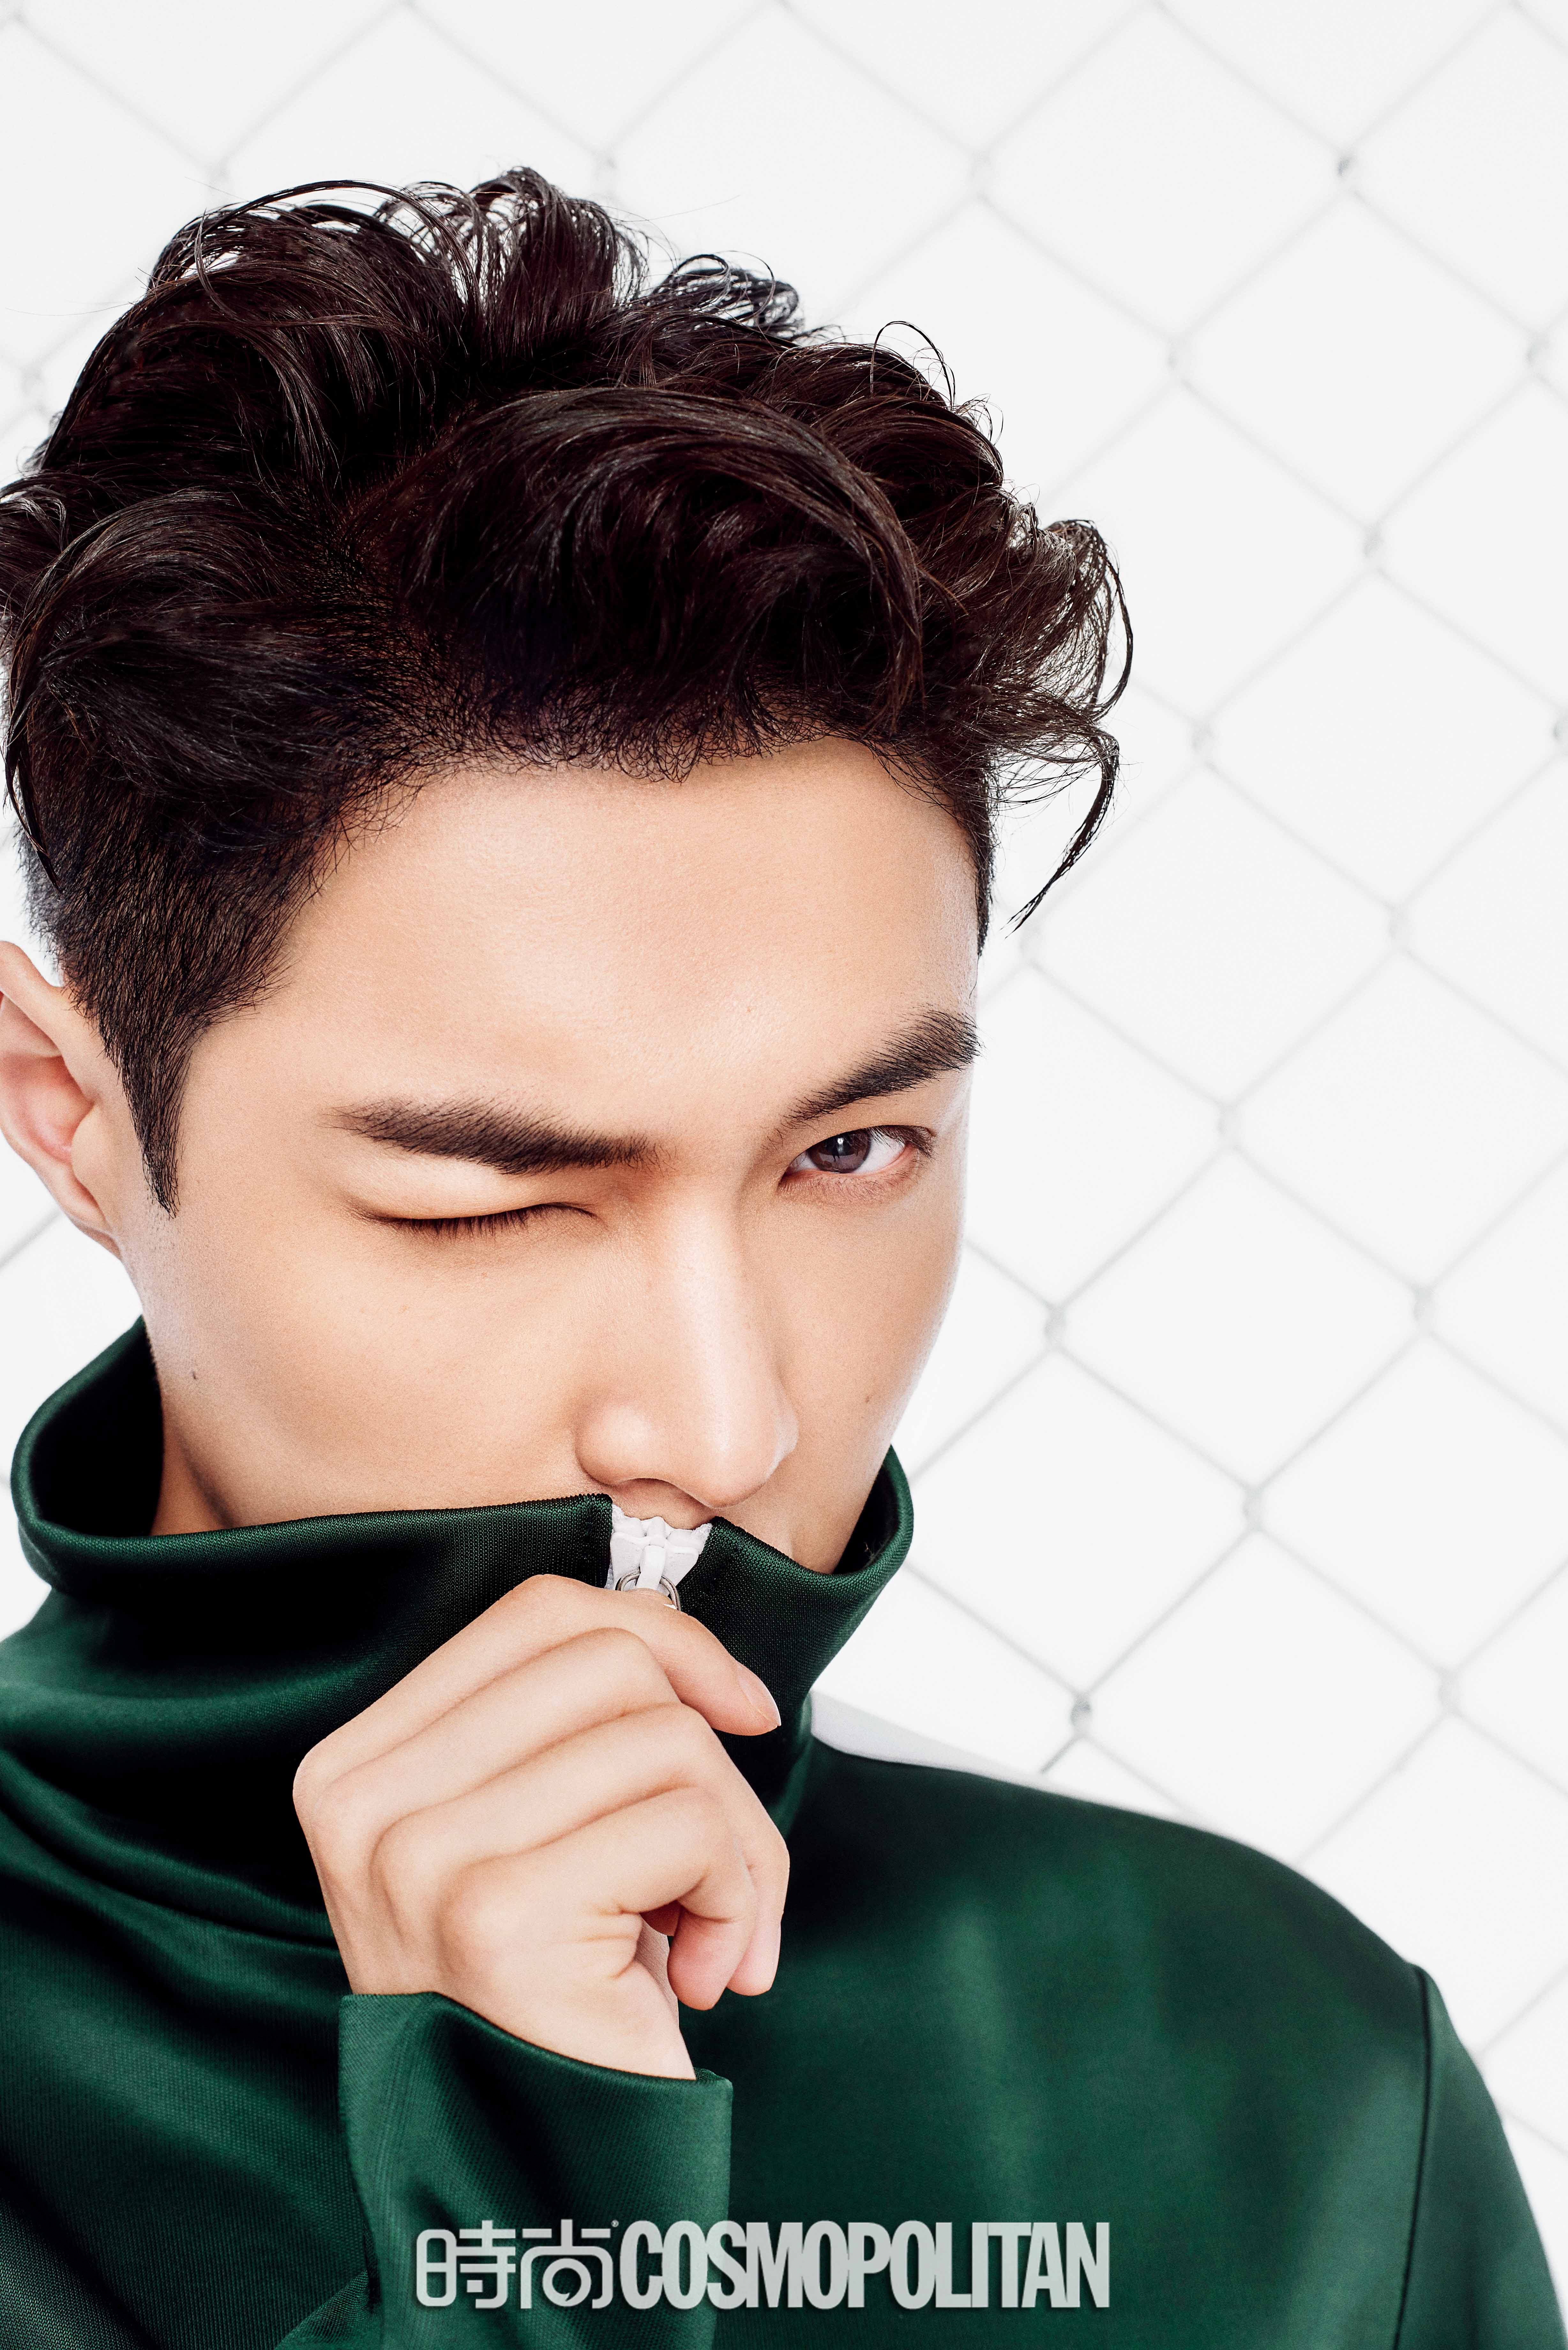 hq scans yixing cosmopolitan china august issue